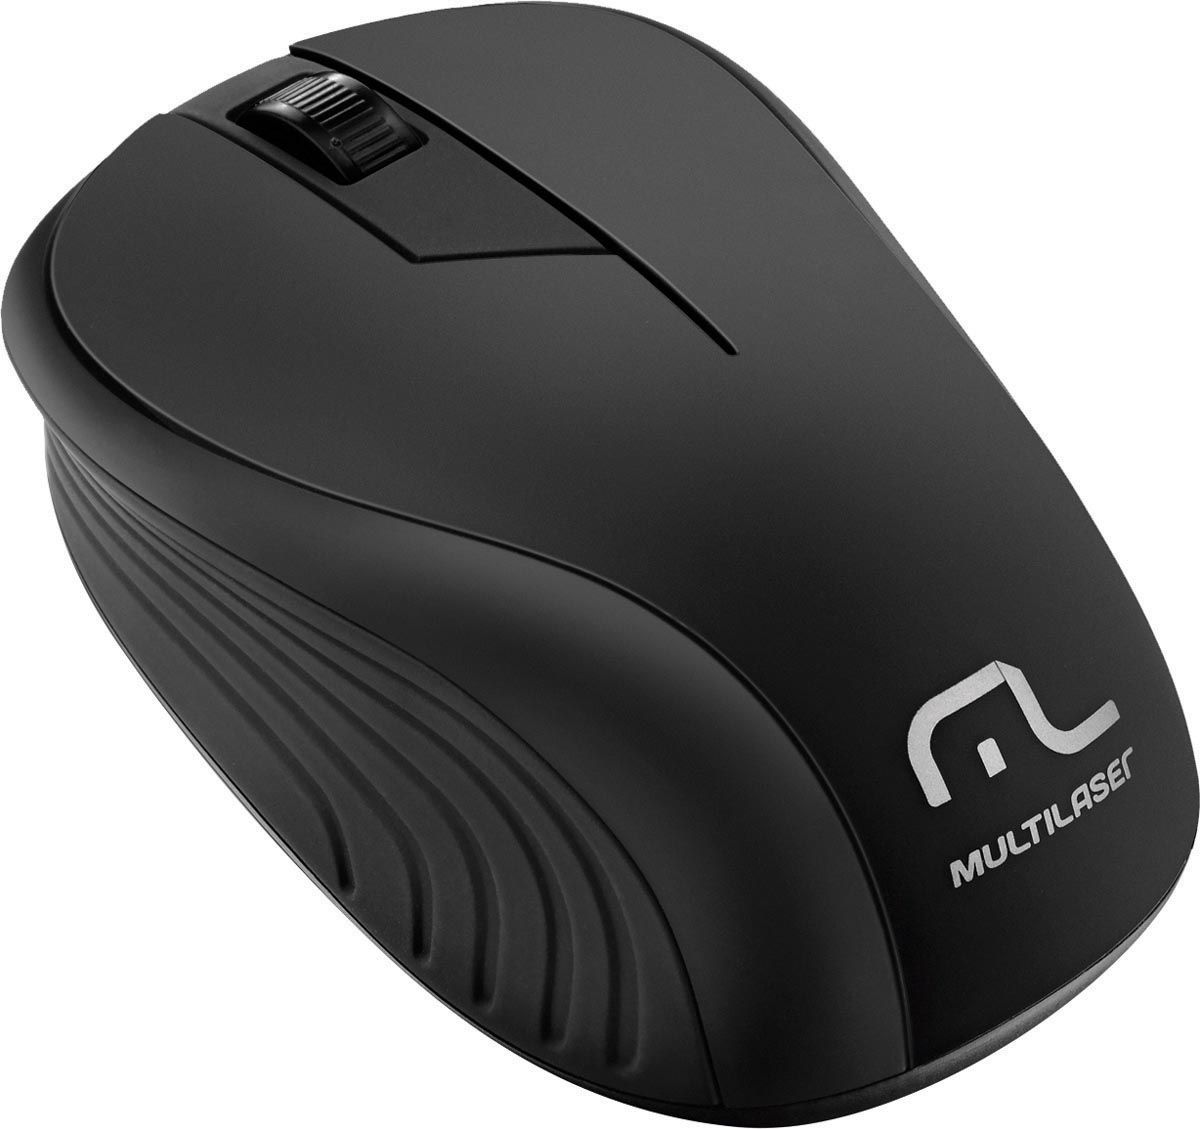 MOUSE SEM FIO 2.4GHZ PRETO USB PLUG AND PLAY 1200DPI MO212